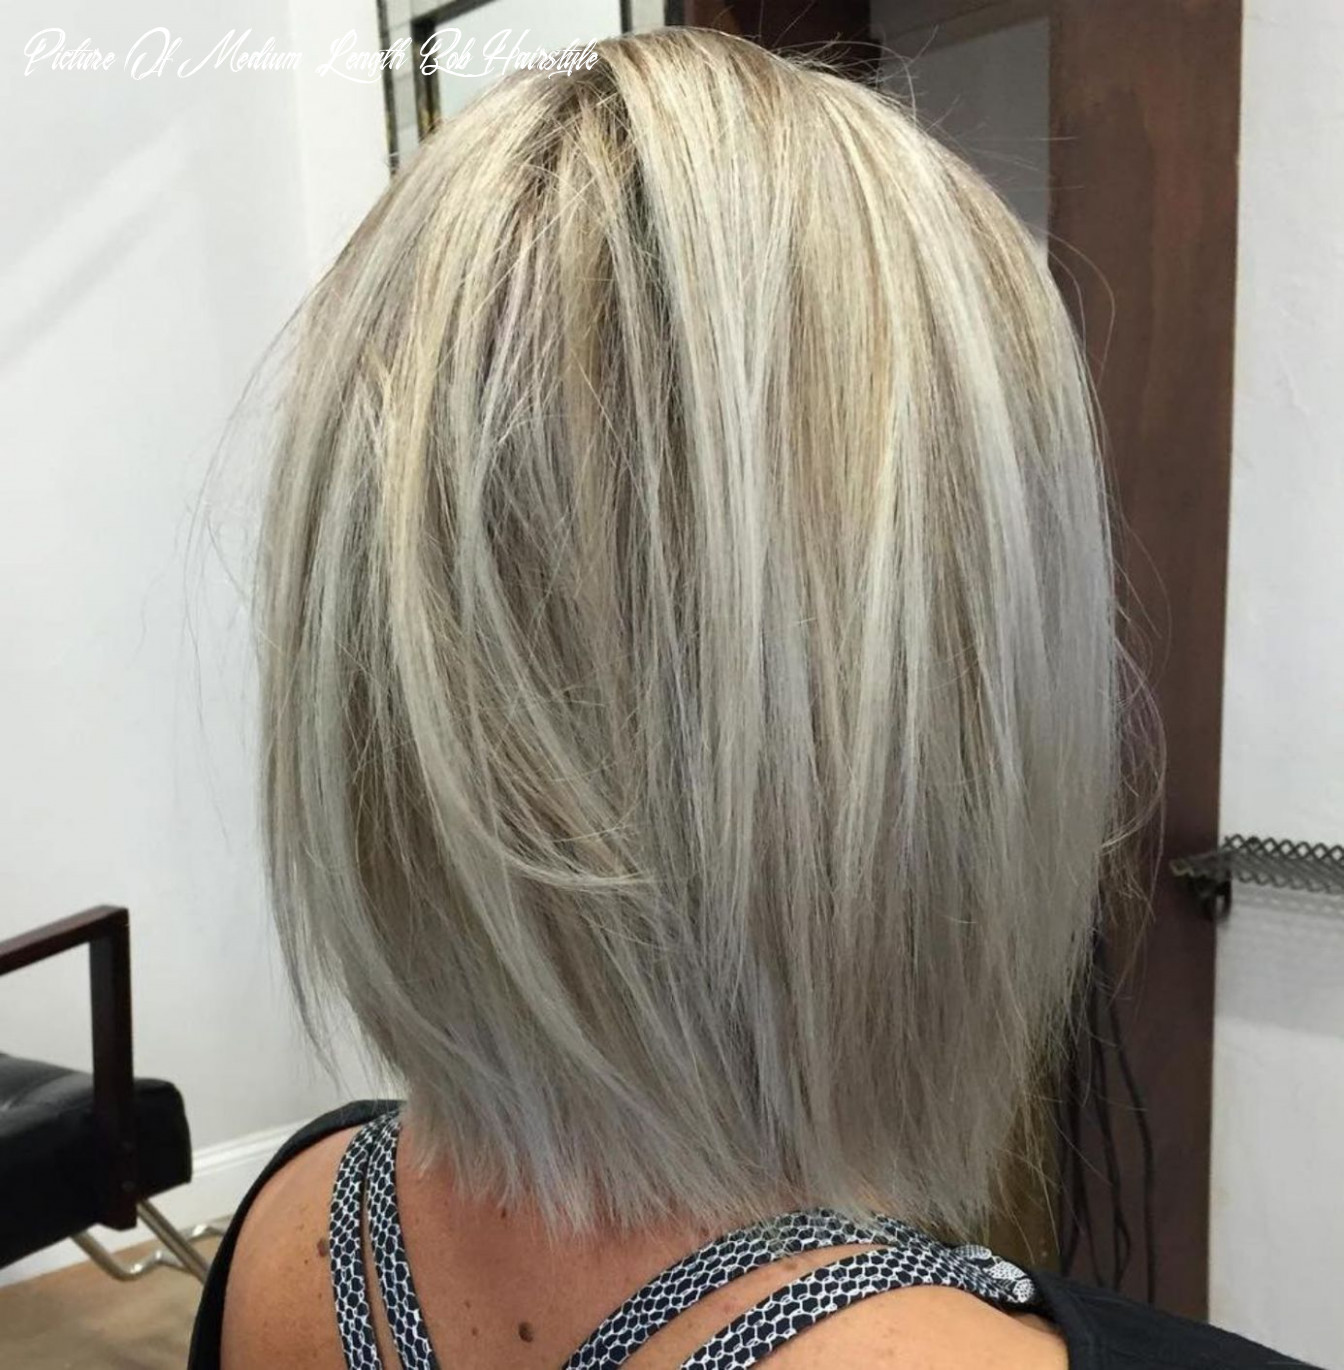 Pin on hairstyles picture of medium length bob hairstyle